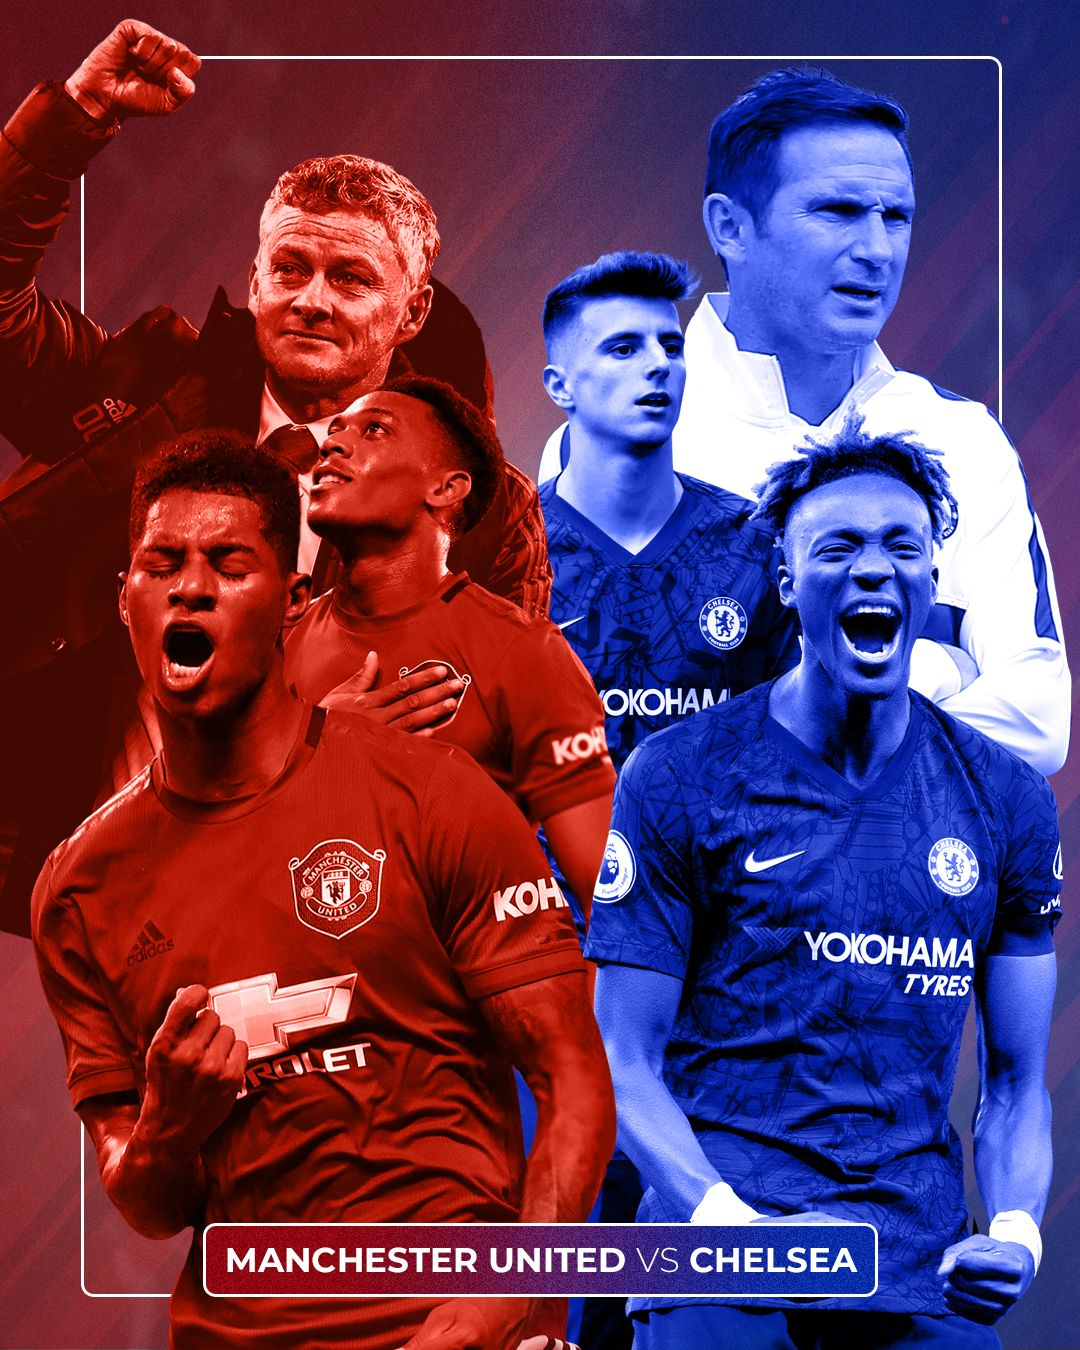 Manchester United Chelsea In 2020 Manchester United Champions League Manchester United Chelsea Manchester United Poster